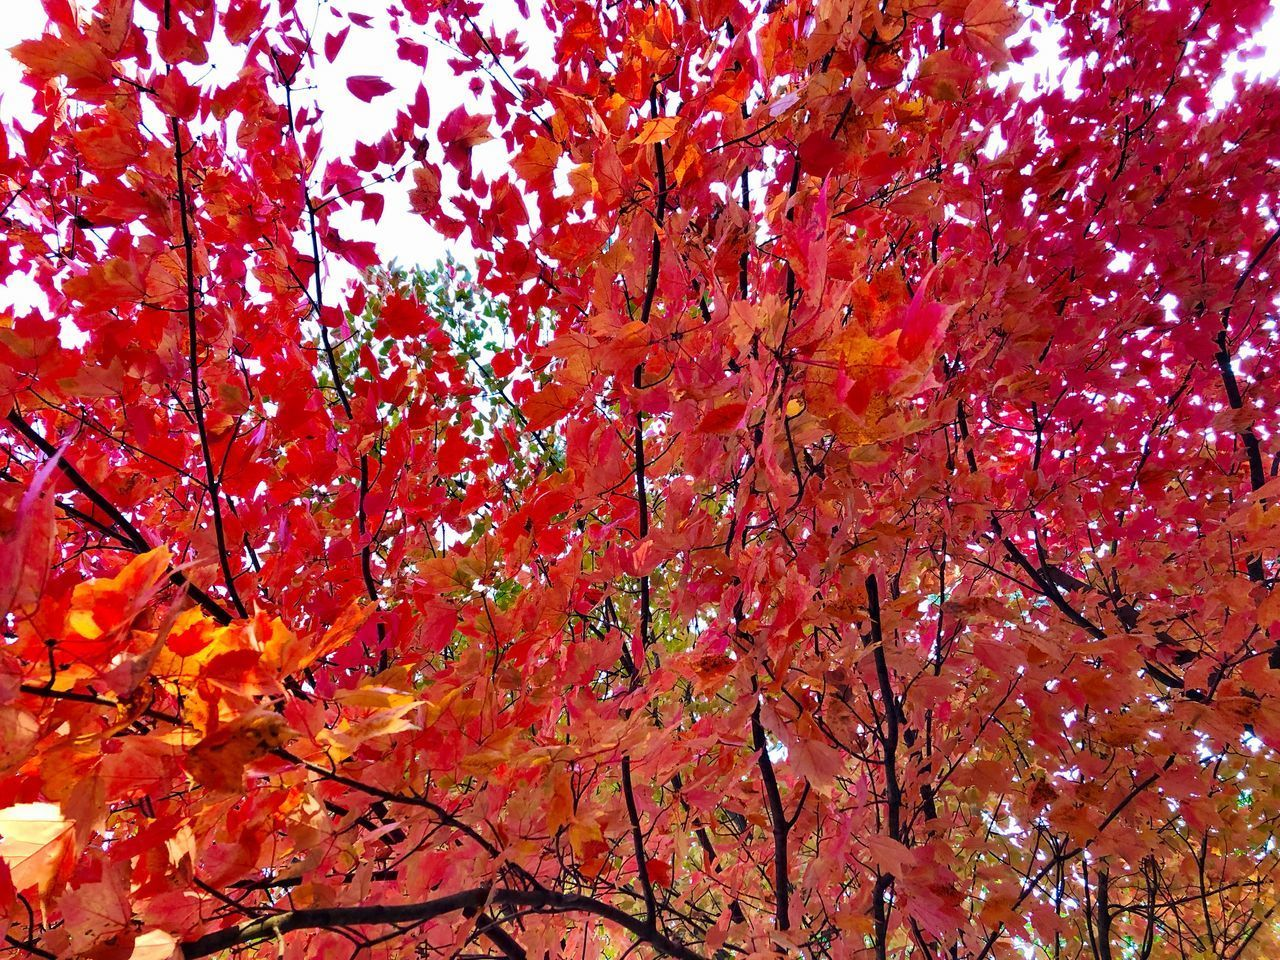 autumn, tree, change, plant, branch, beauty in nature, growth, no people, orange color, nature, low angle view, red, day, plant part, leaf, outdoors, full frame, tranquility, scenics - nature, maple tree, maple leaf, fall, natural condition, tree canopy, autumn collection